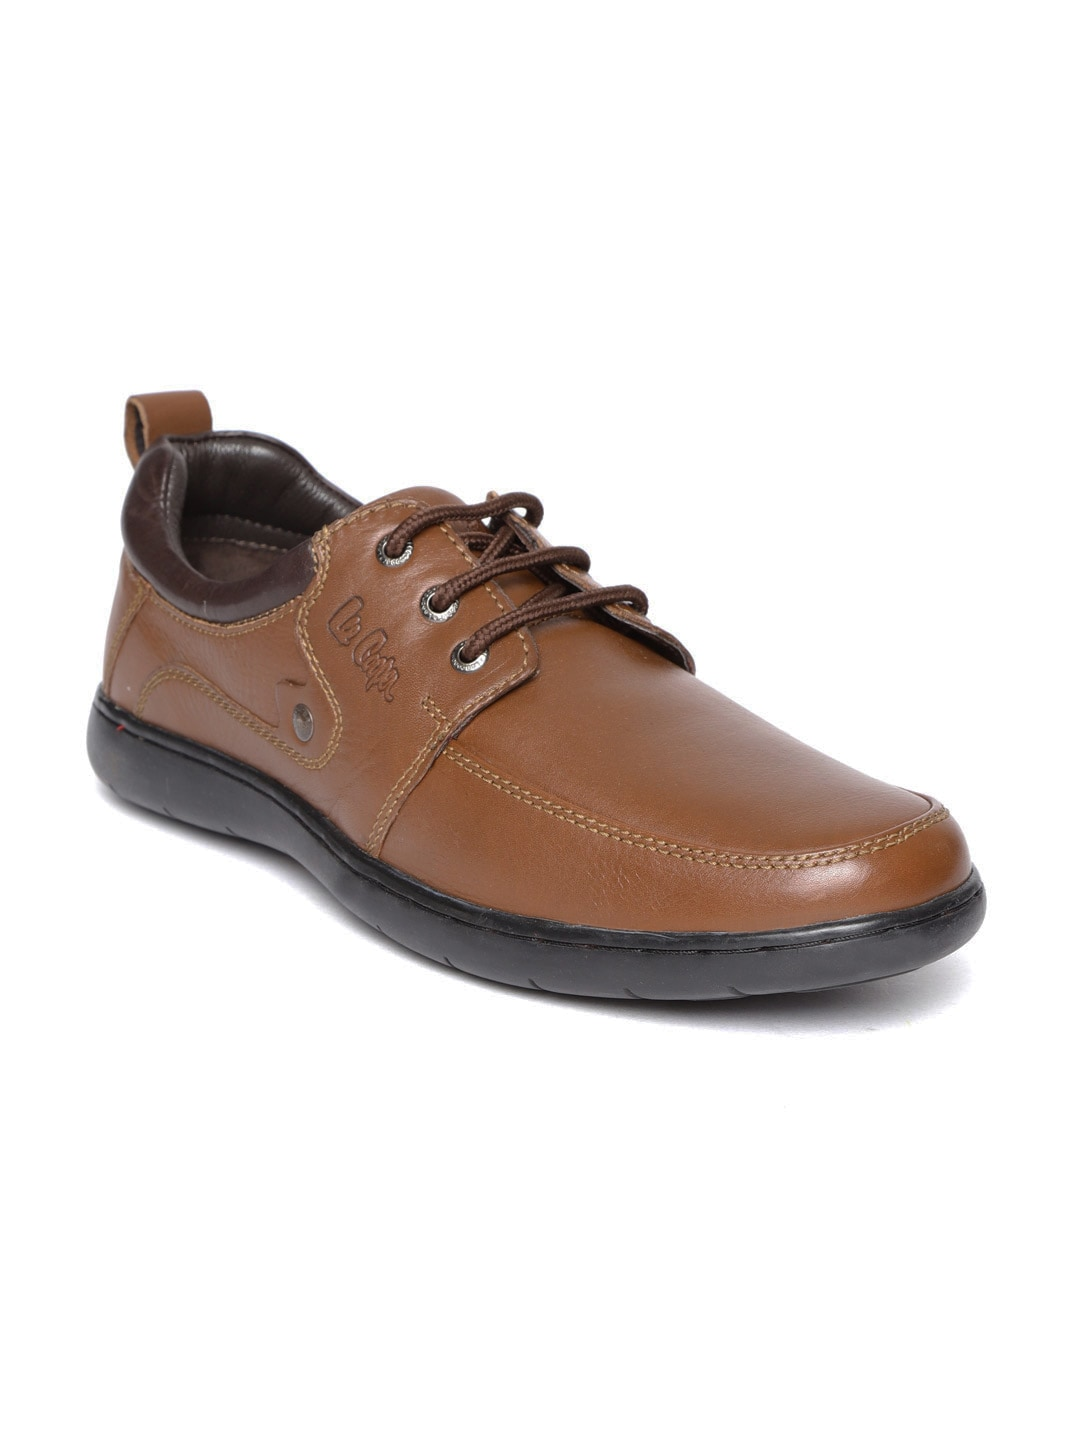 724f5cee9bf Lee Cooper Leather Shoes - Buy Lee Cooper Leather Shoes Online in India